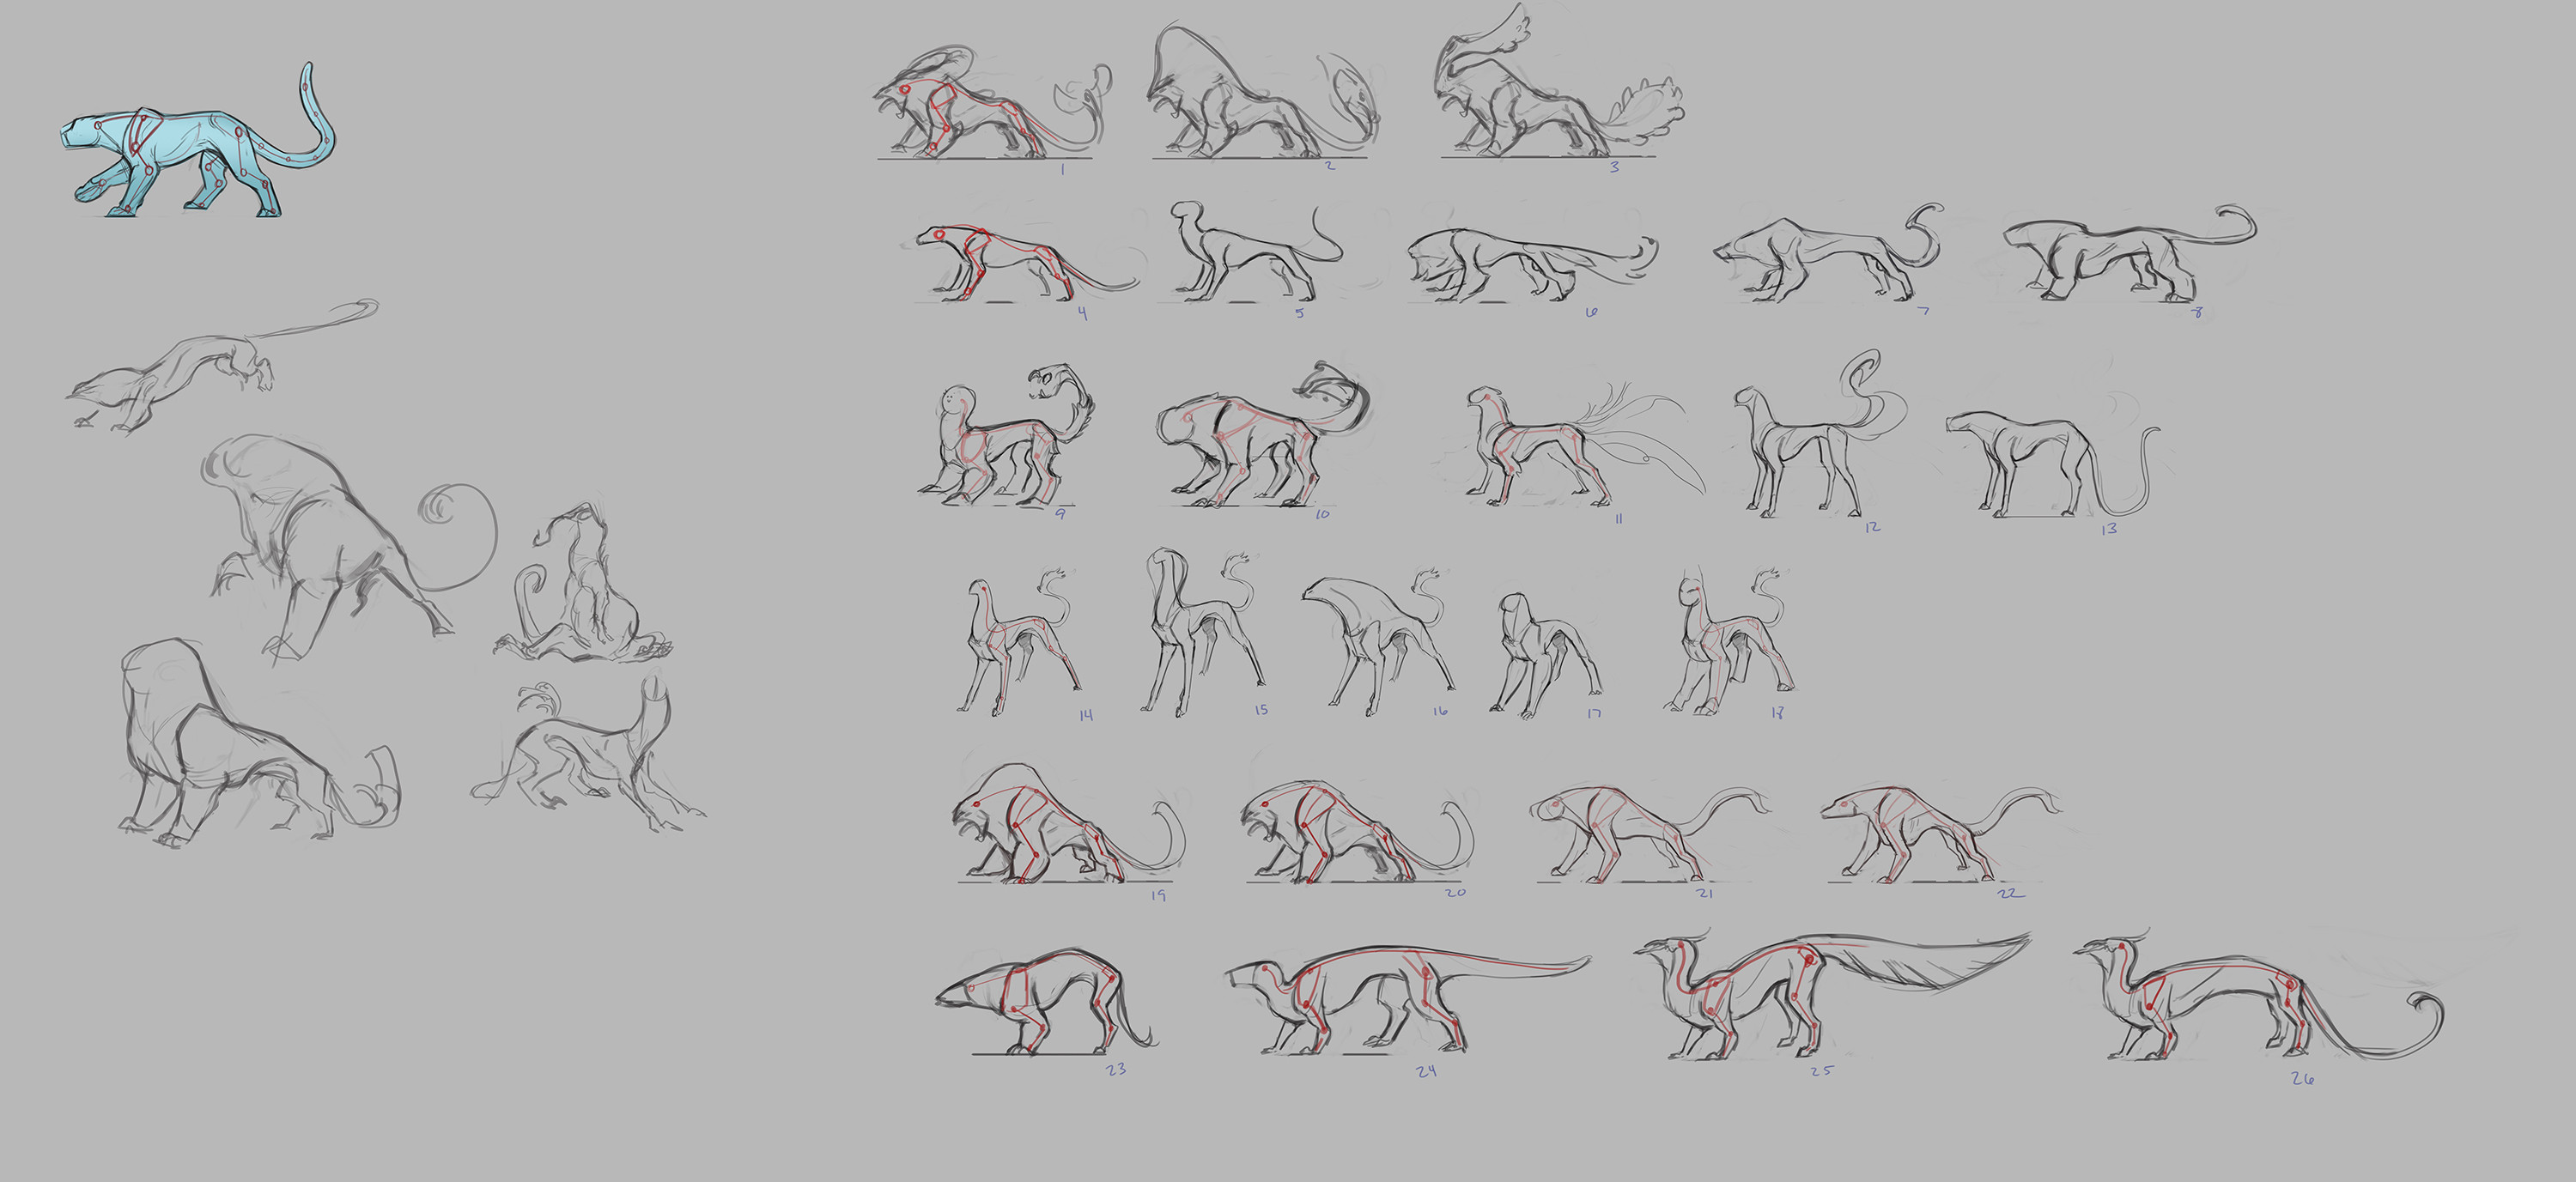 After general explorations, I had the chance to push proportions to see where different rigs would break.